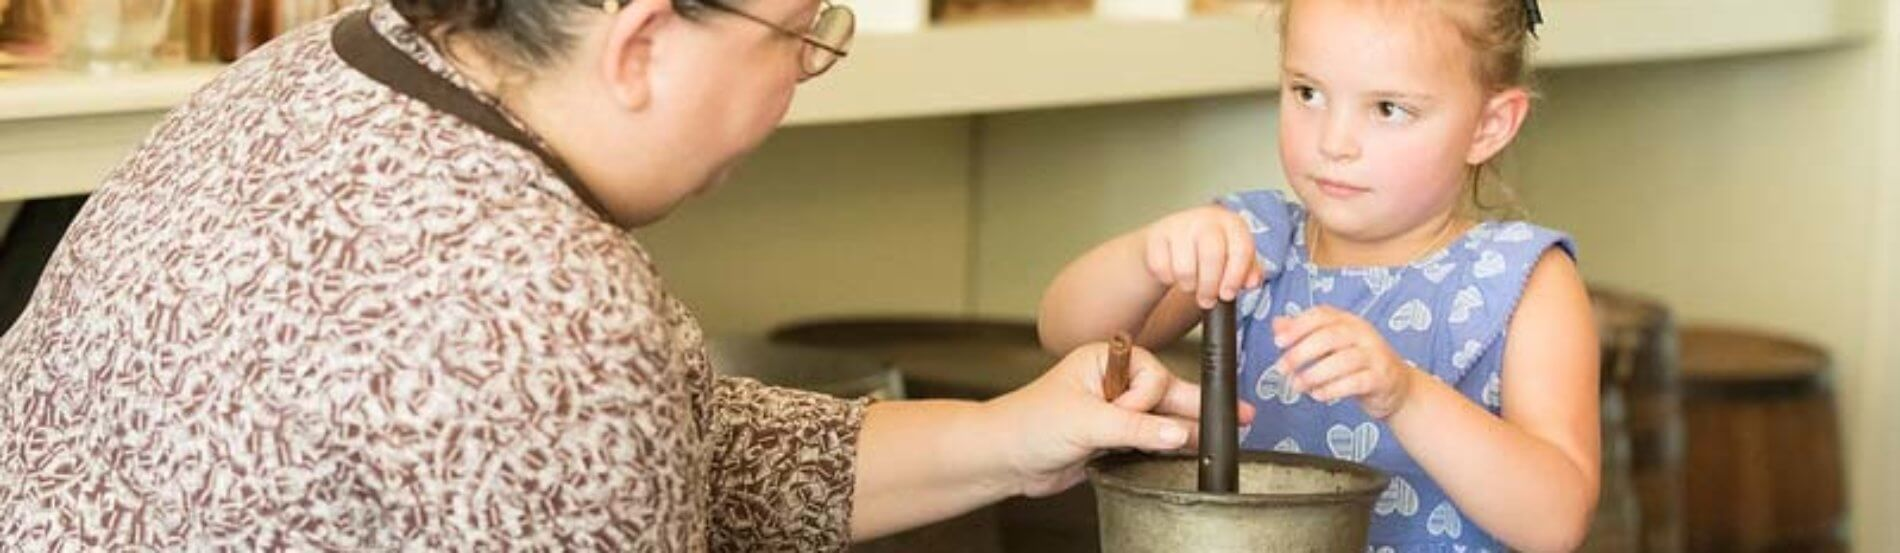 girl uses a mortar and pestle in the drug store